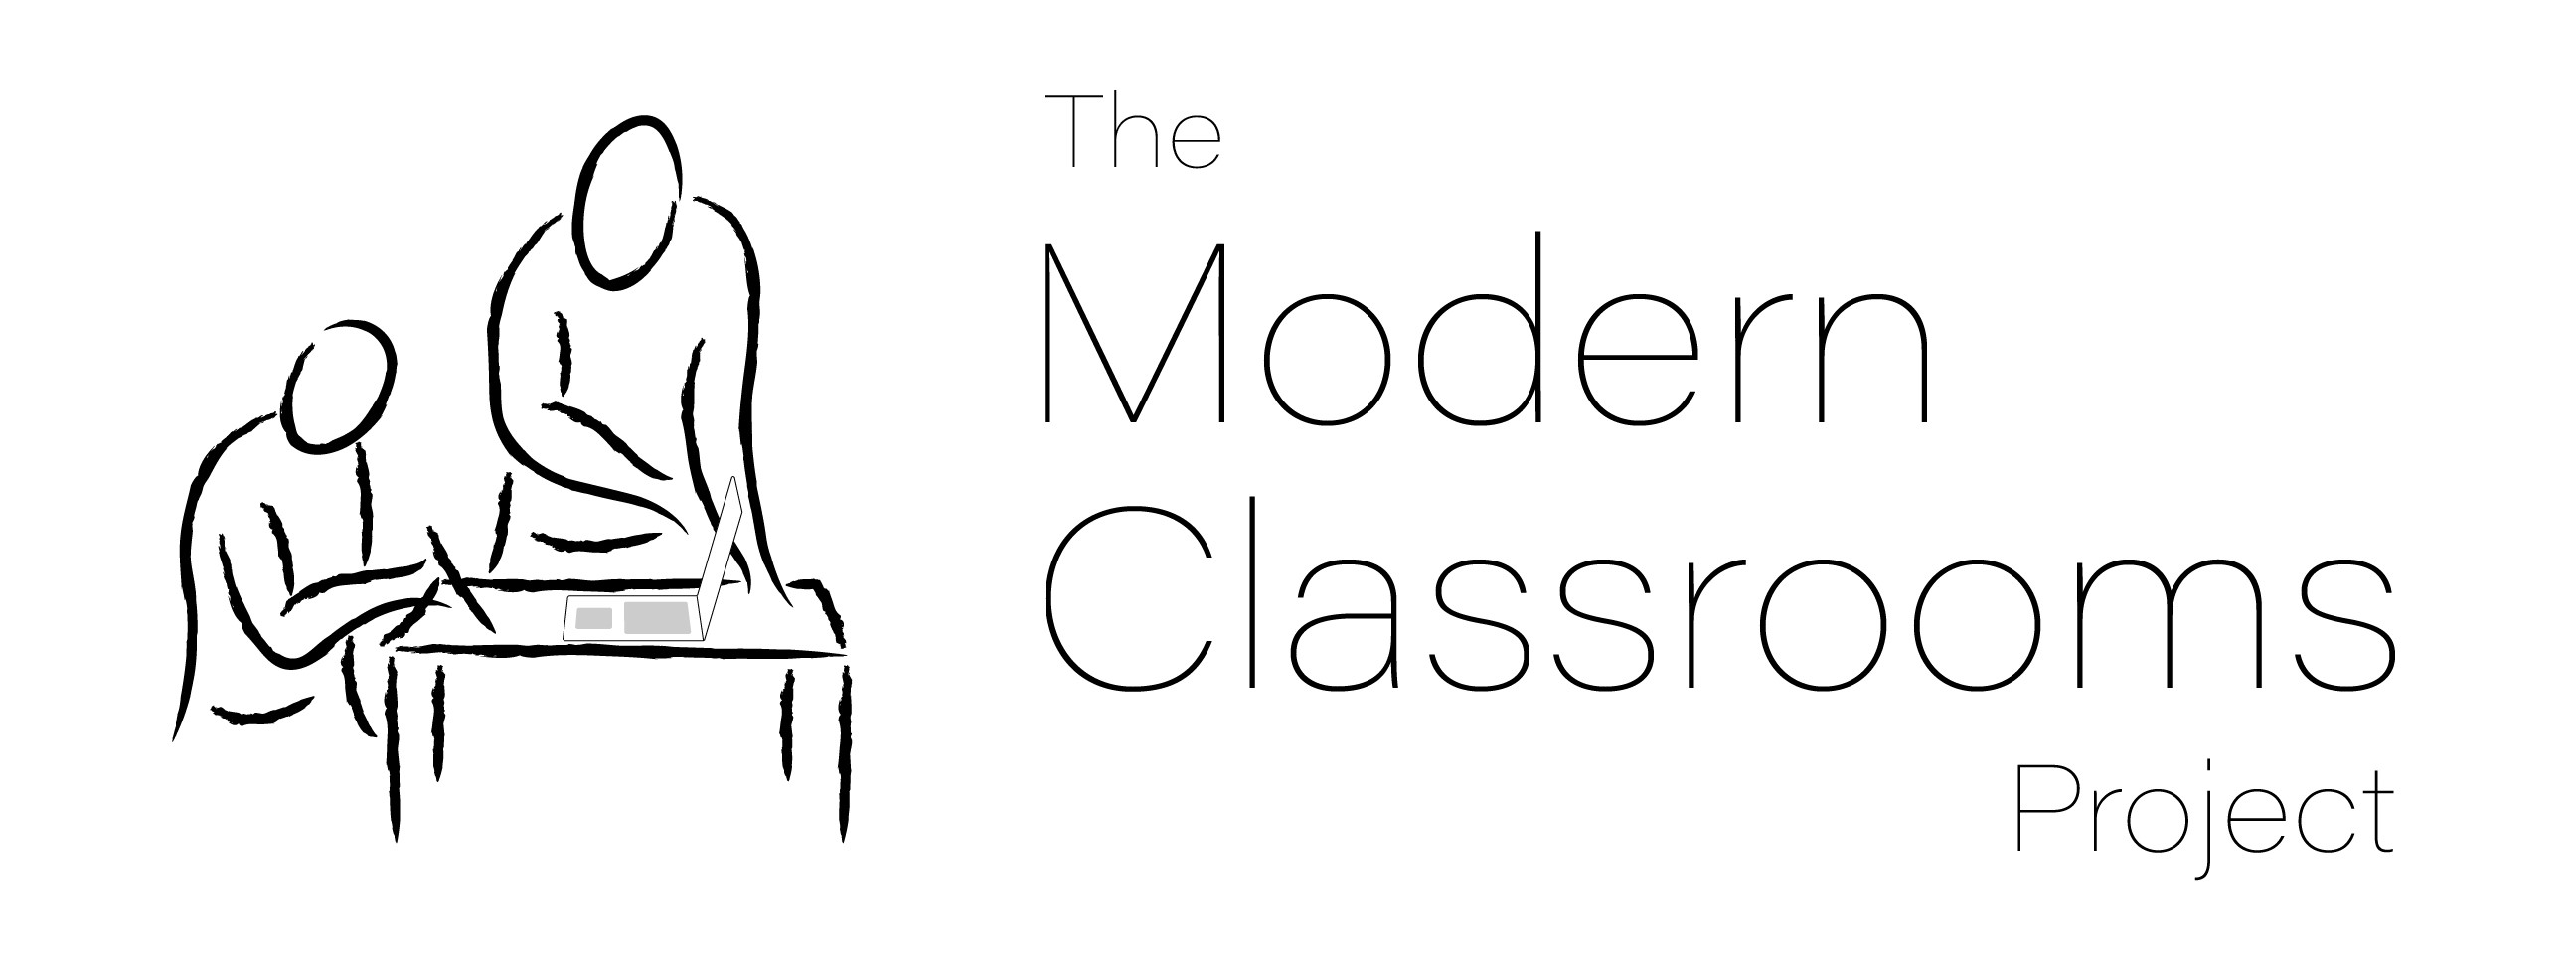 This is a Modern Classrooms Project logo